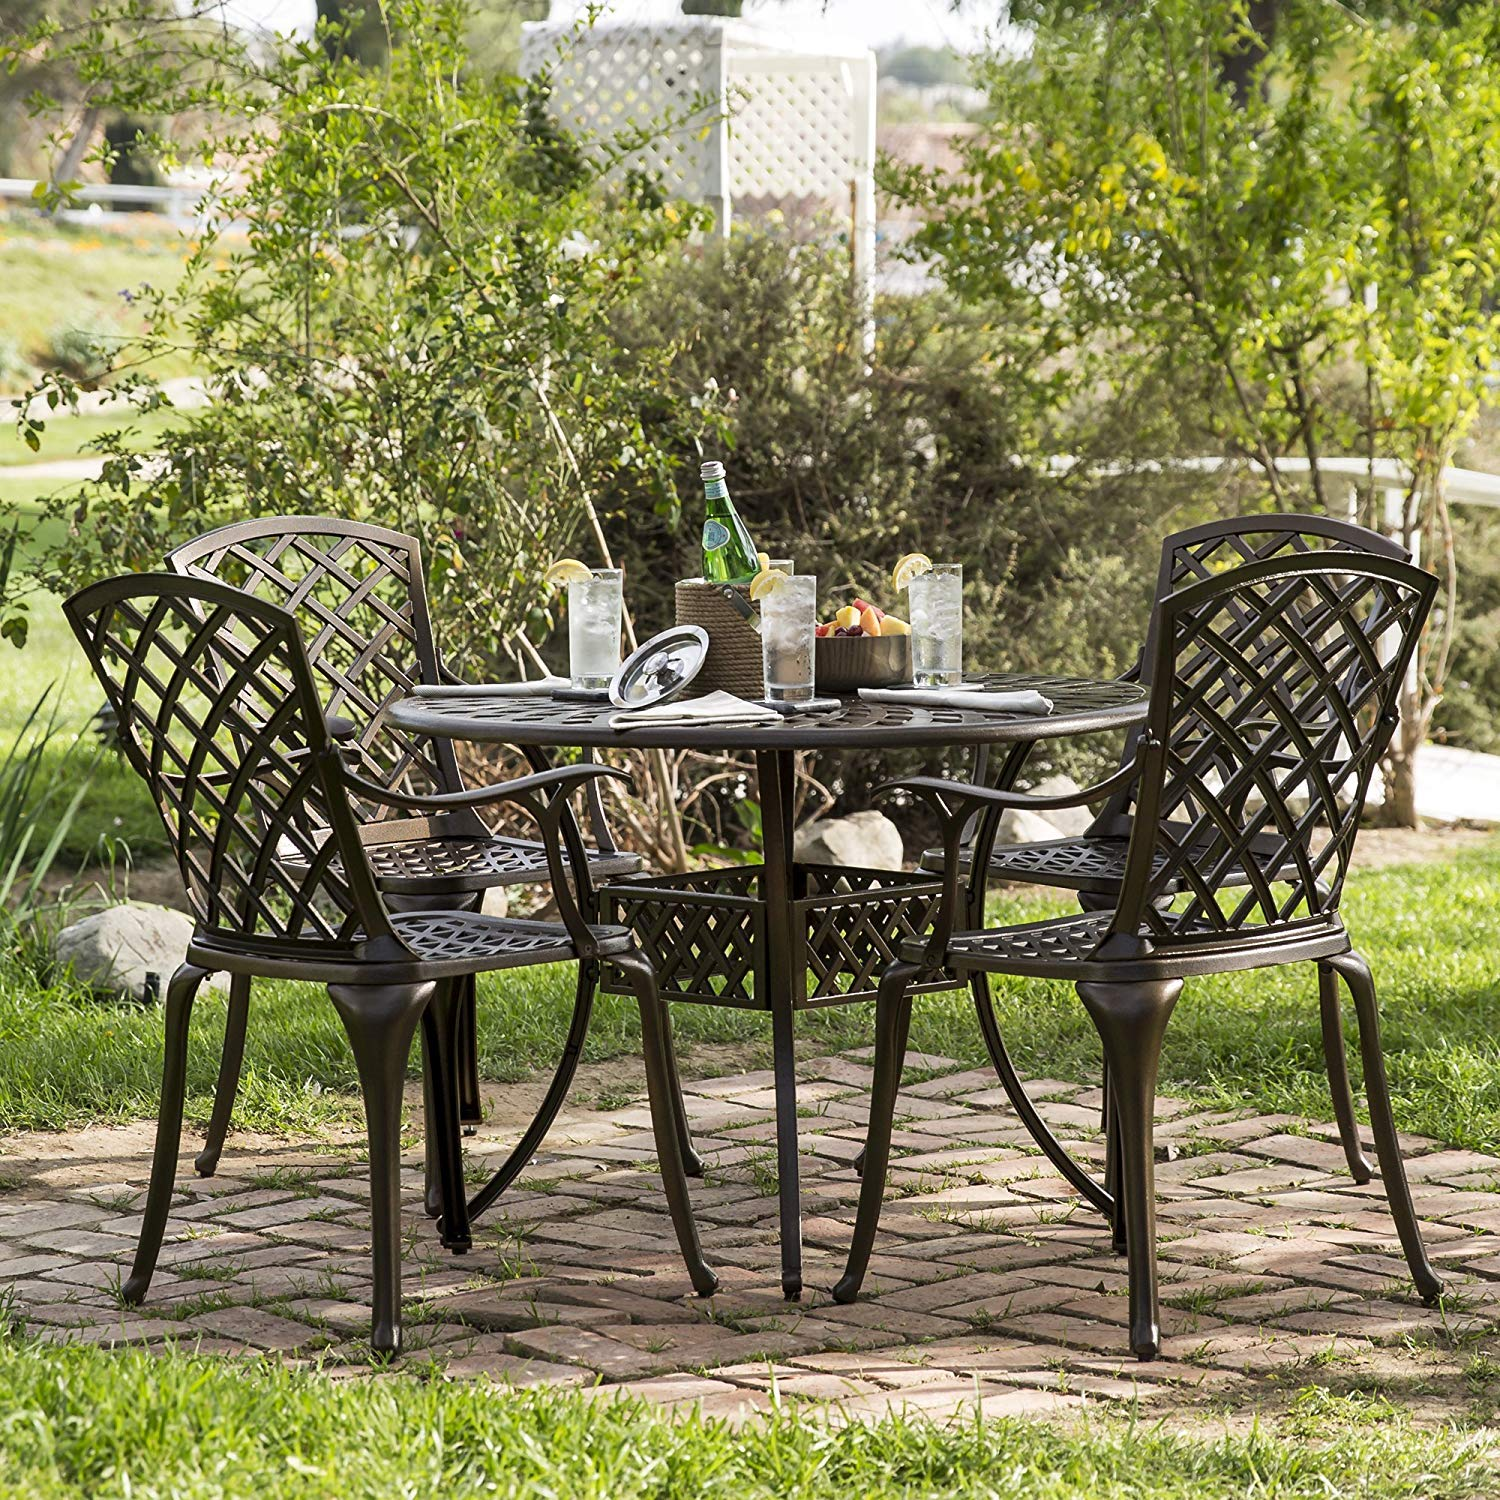 Kinger Home 5-Piece Cast Aluminum Patio Dining Set w 4 Chairs, Umbrella Hole, Lattice Weave Design – Brown